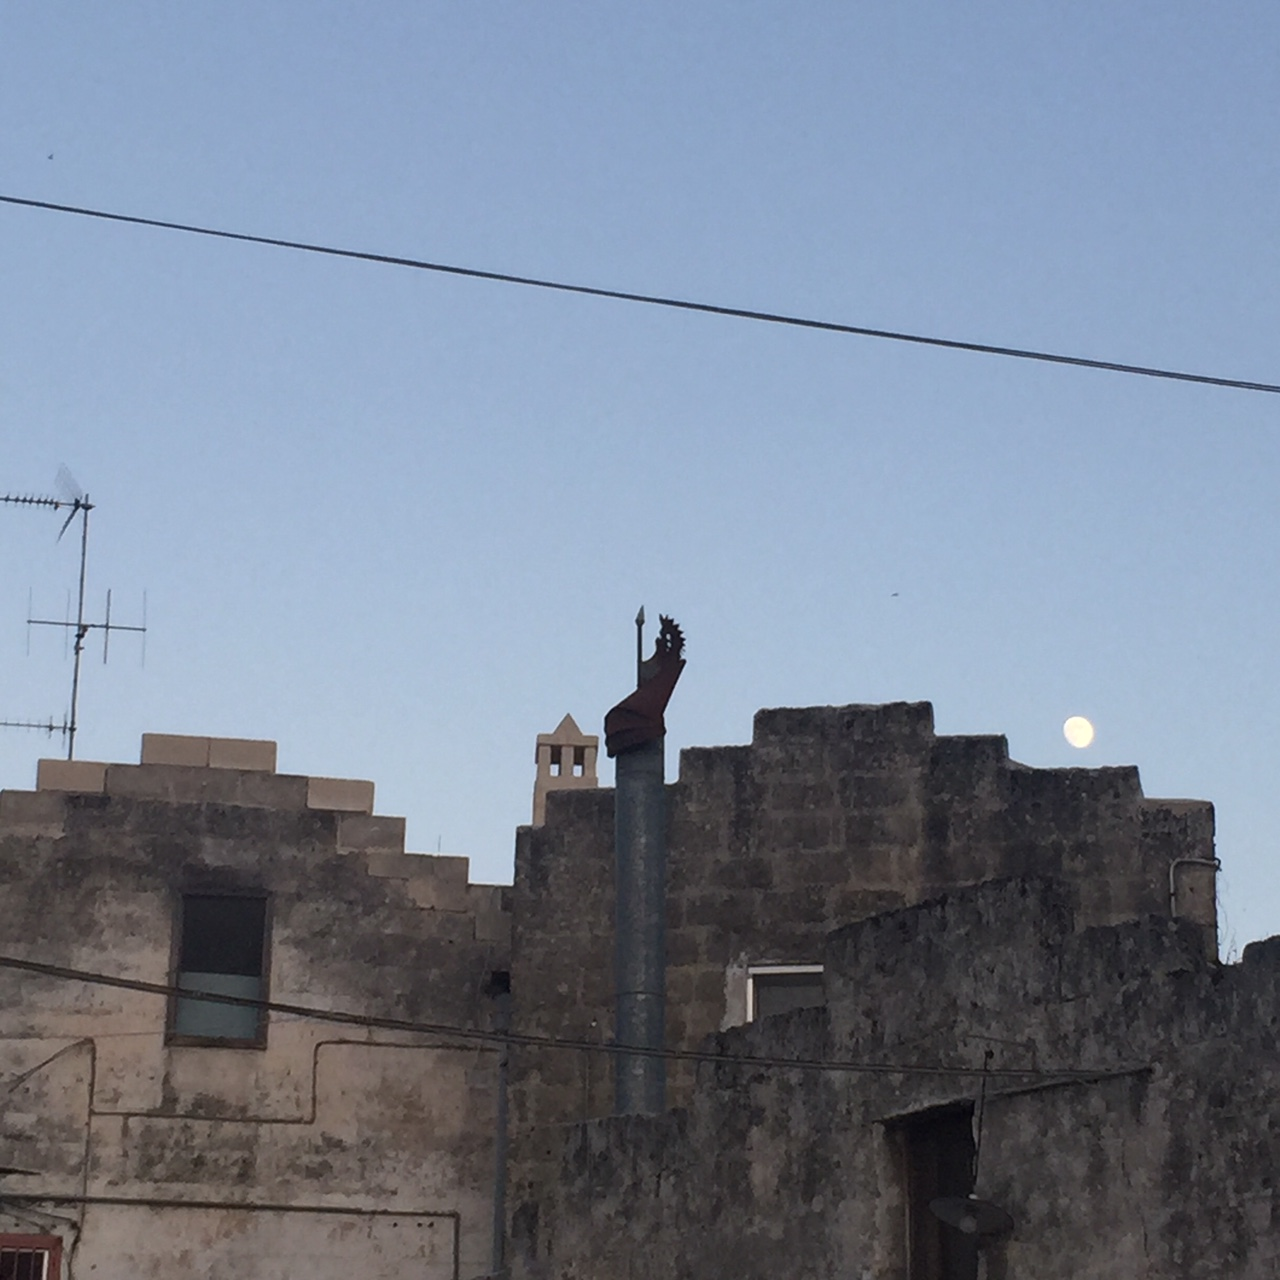 A day in Matera ends